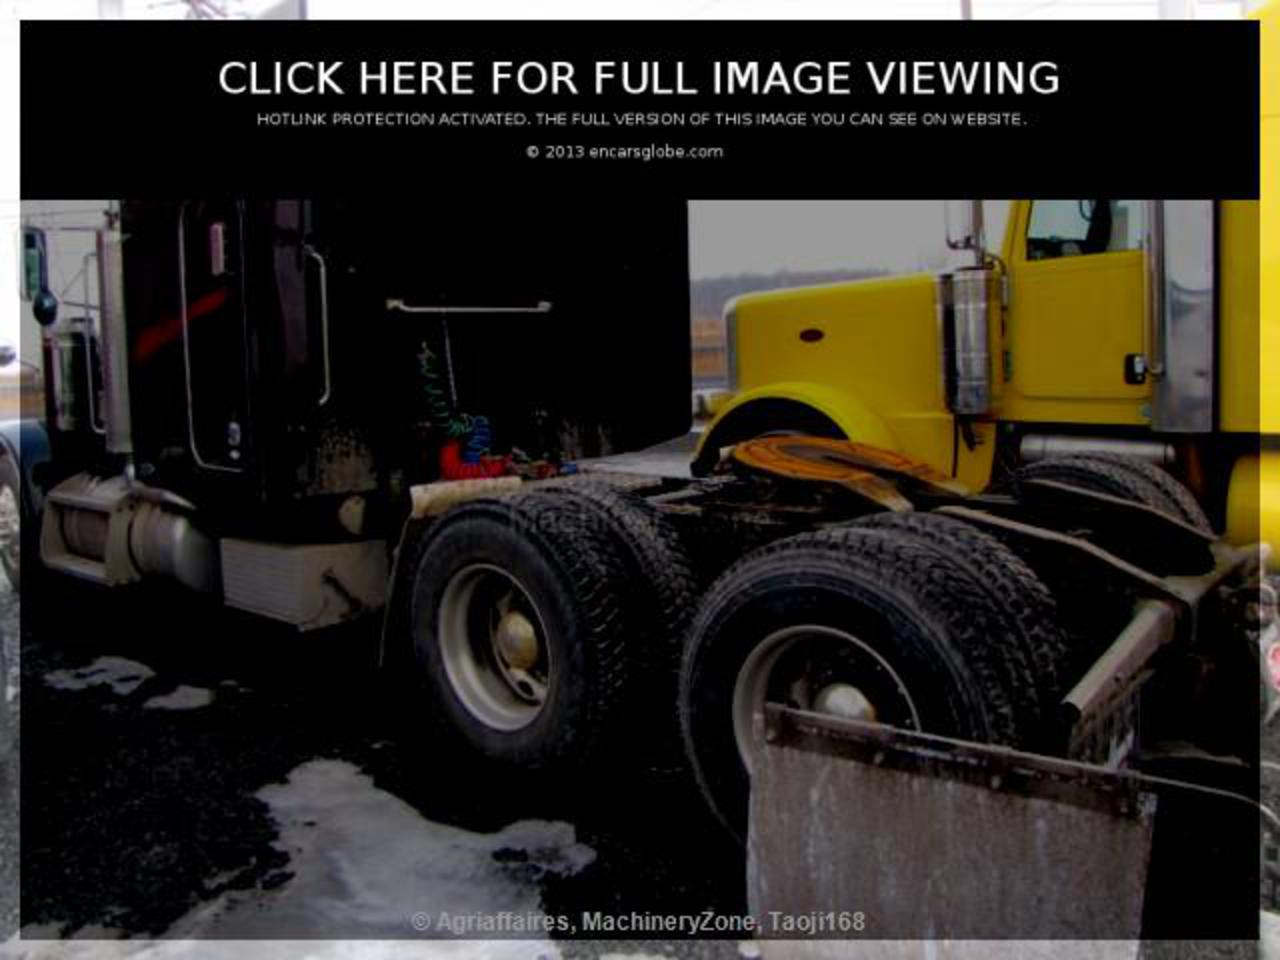 Peterbilt 260GD 5 Ton Tractor Photo Gallery: Photo #09 out of 10 ...